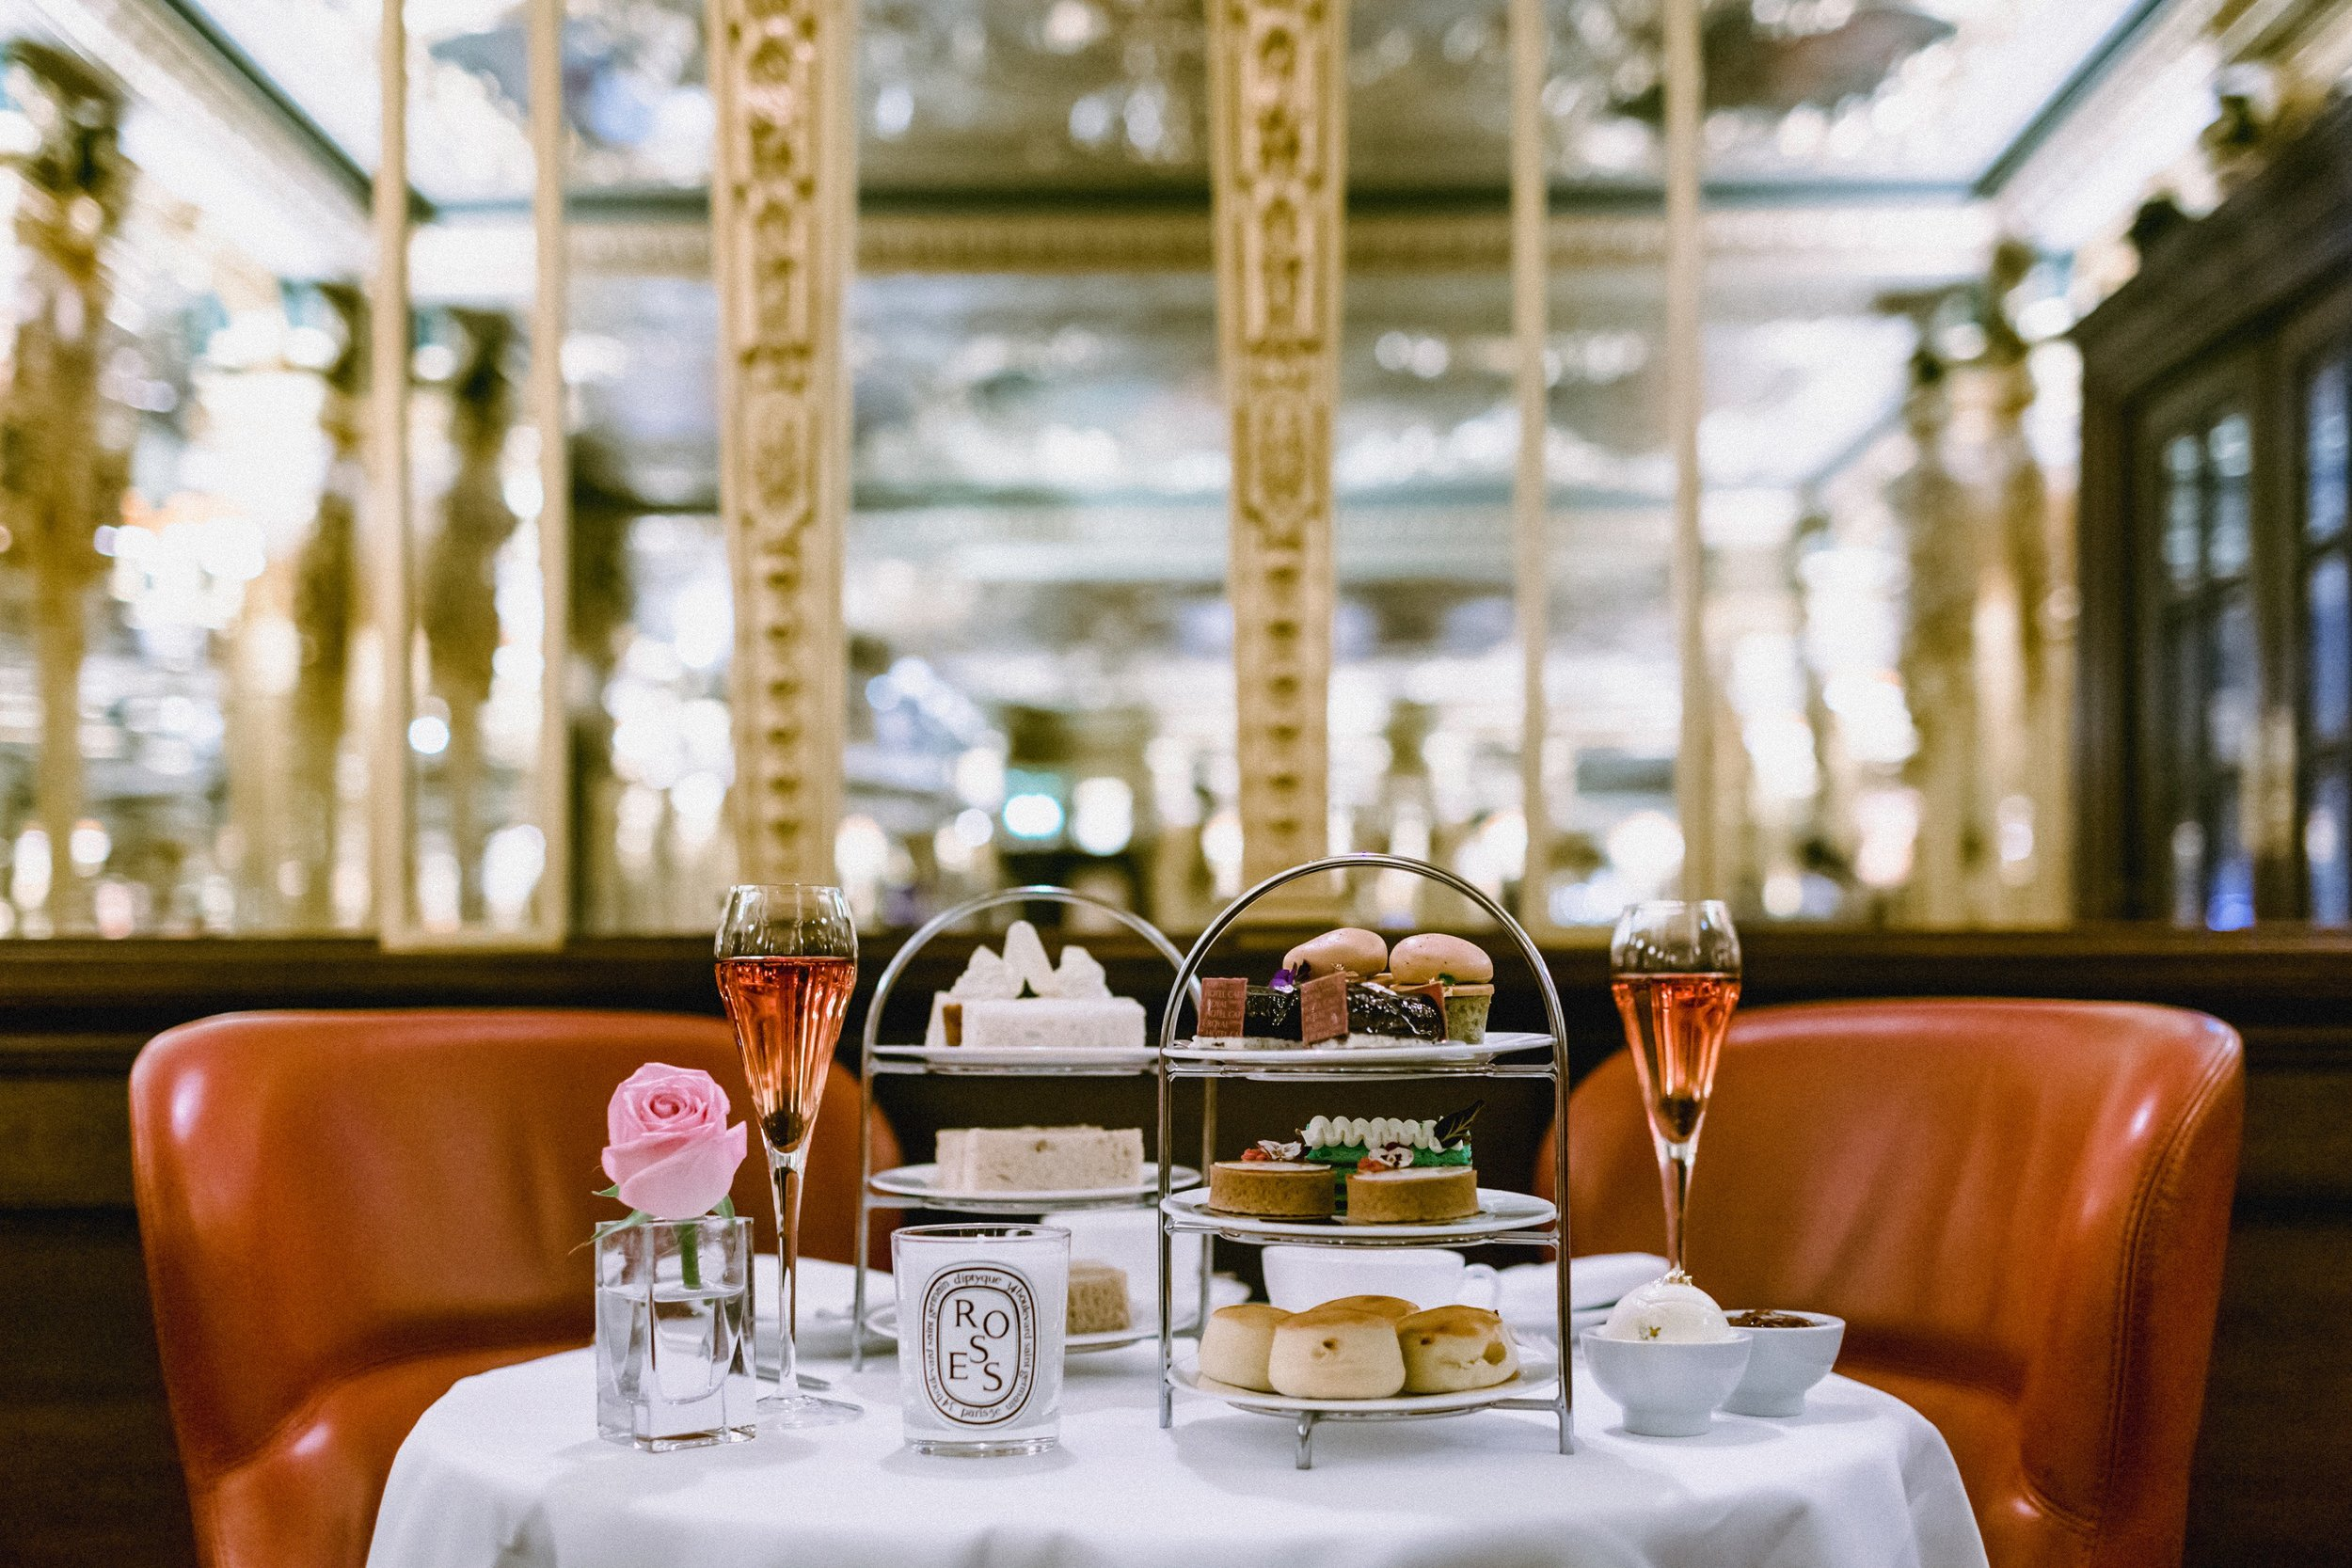 Hotel Cafe Royal - Diptyque Valentines Afternoon Tea 1.jpg